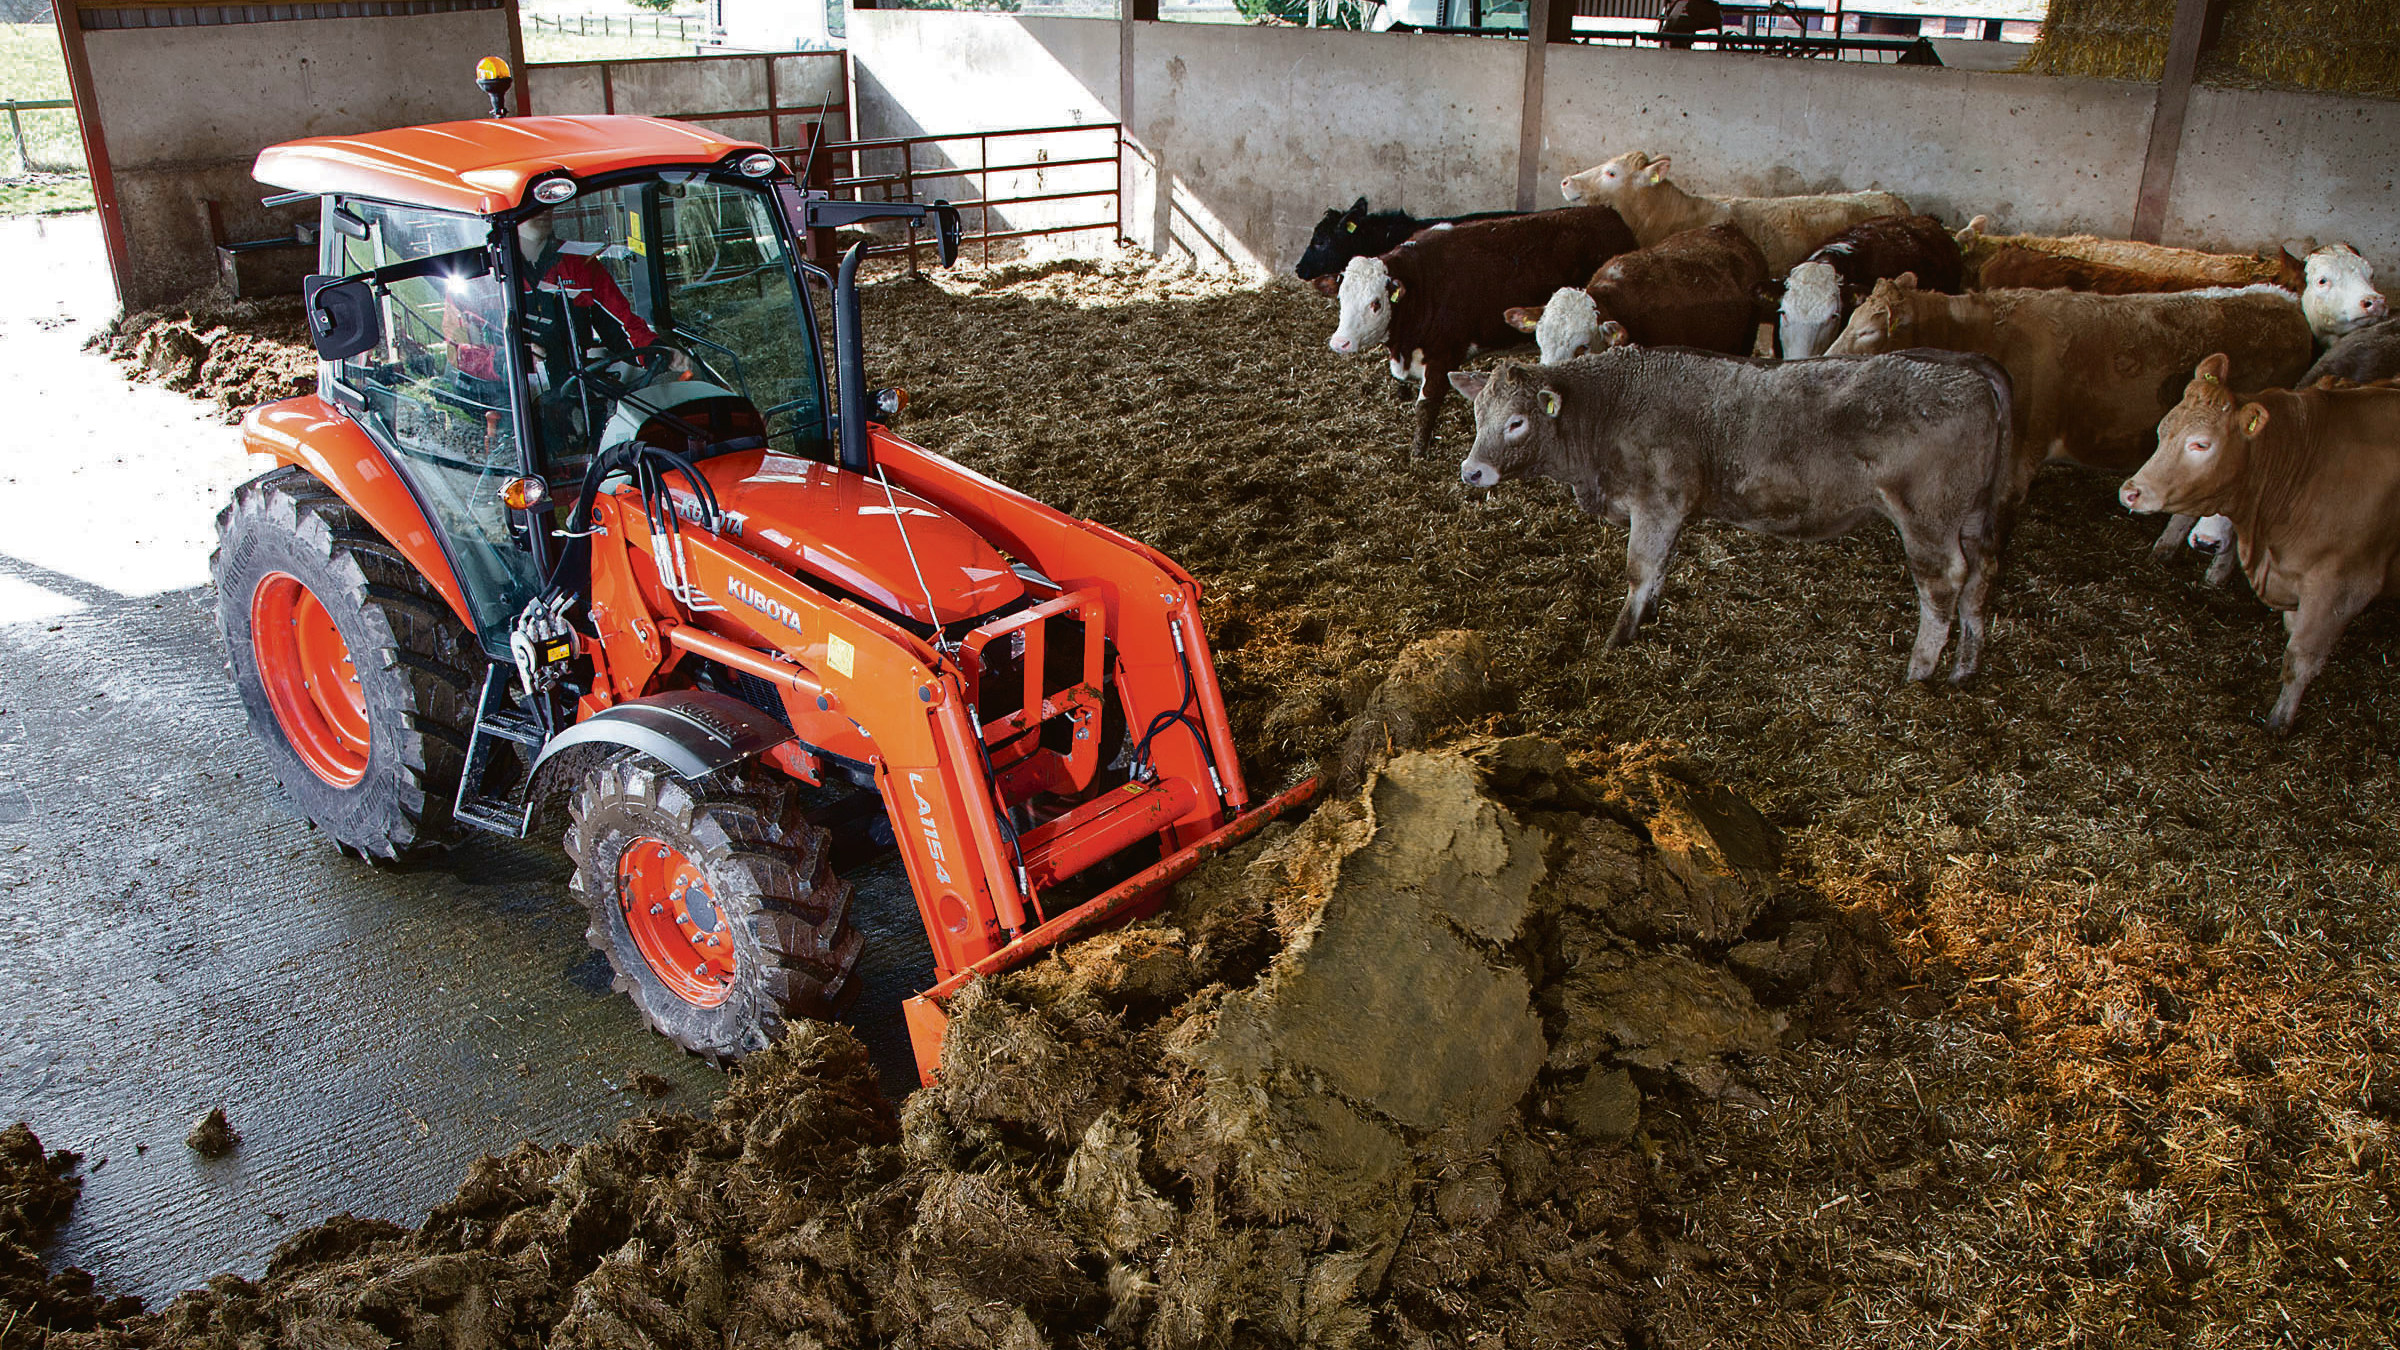 On test: Kubota's new 60 series tractor range